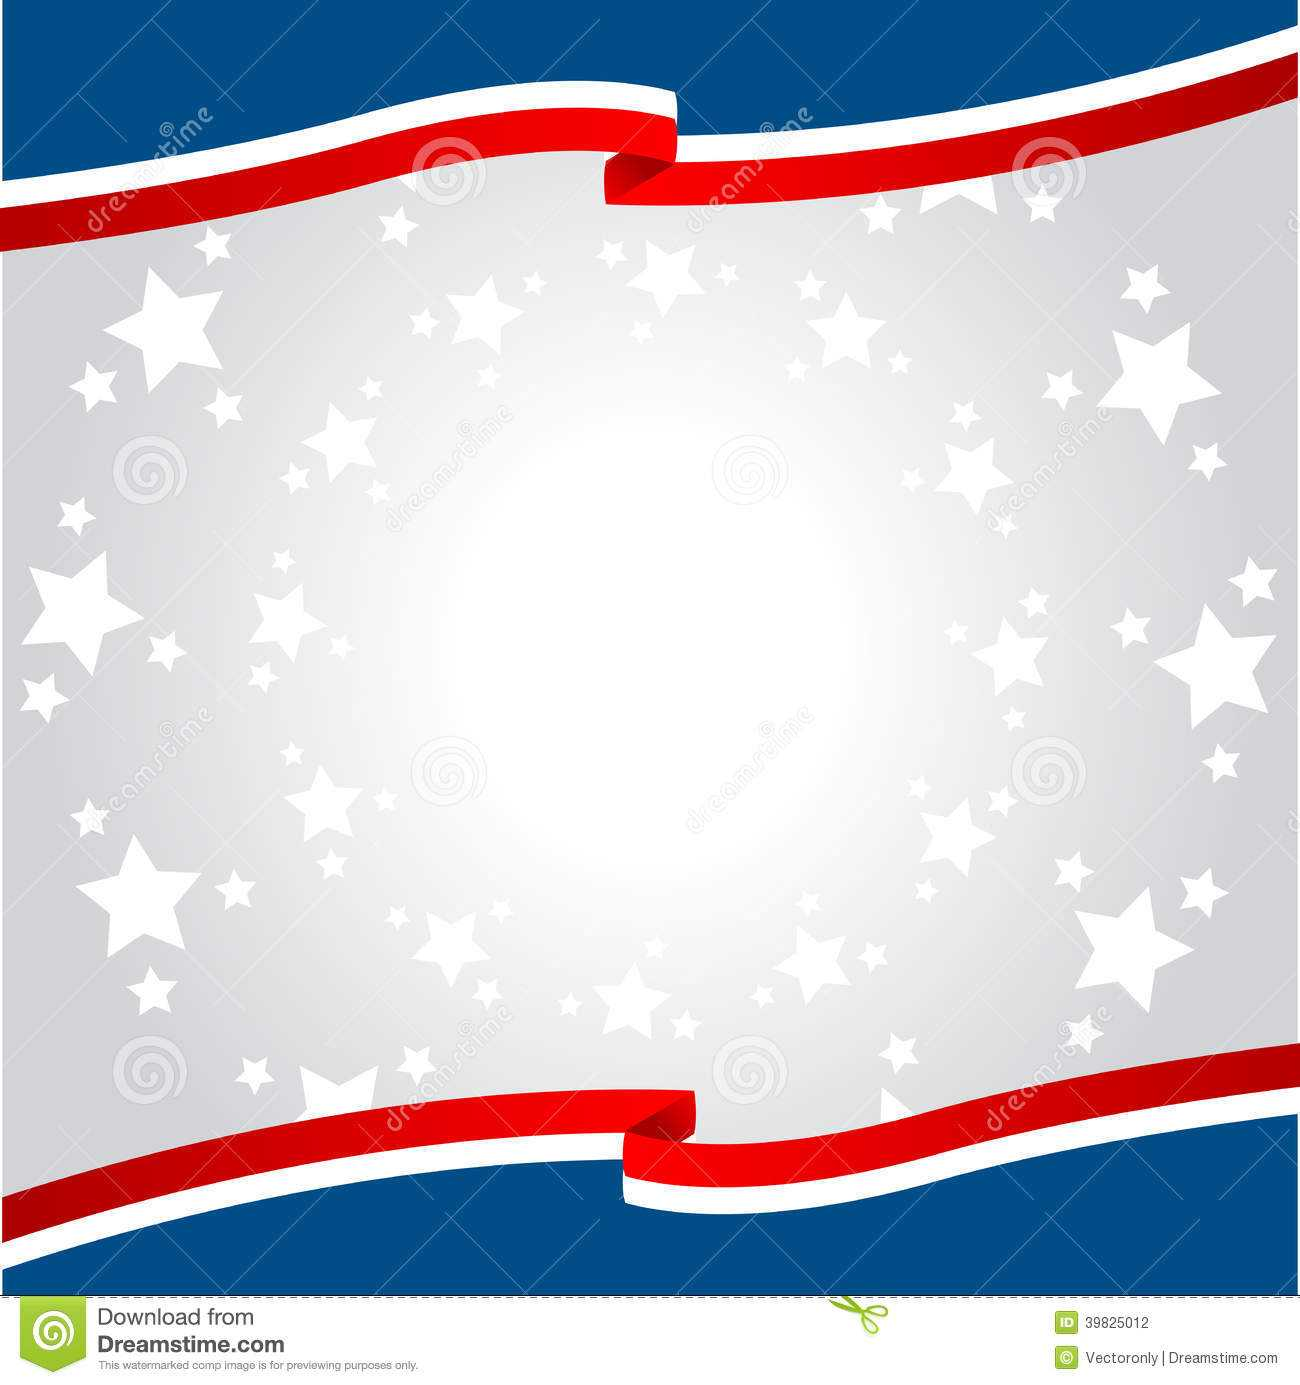 Free Download Patriotic Backgrounds Patriotic Wallpapers 48 Within Patriotic Powerpoint Template